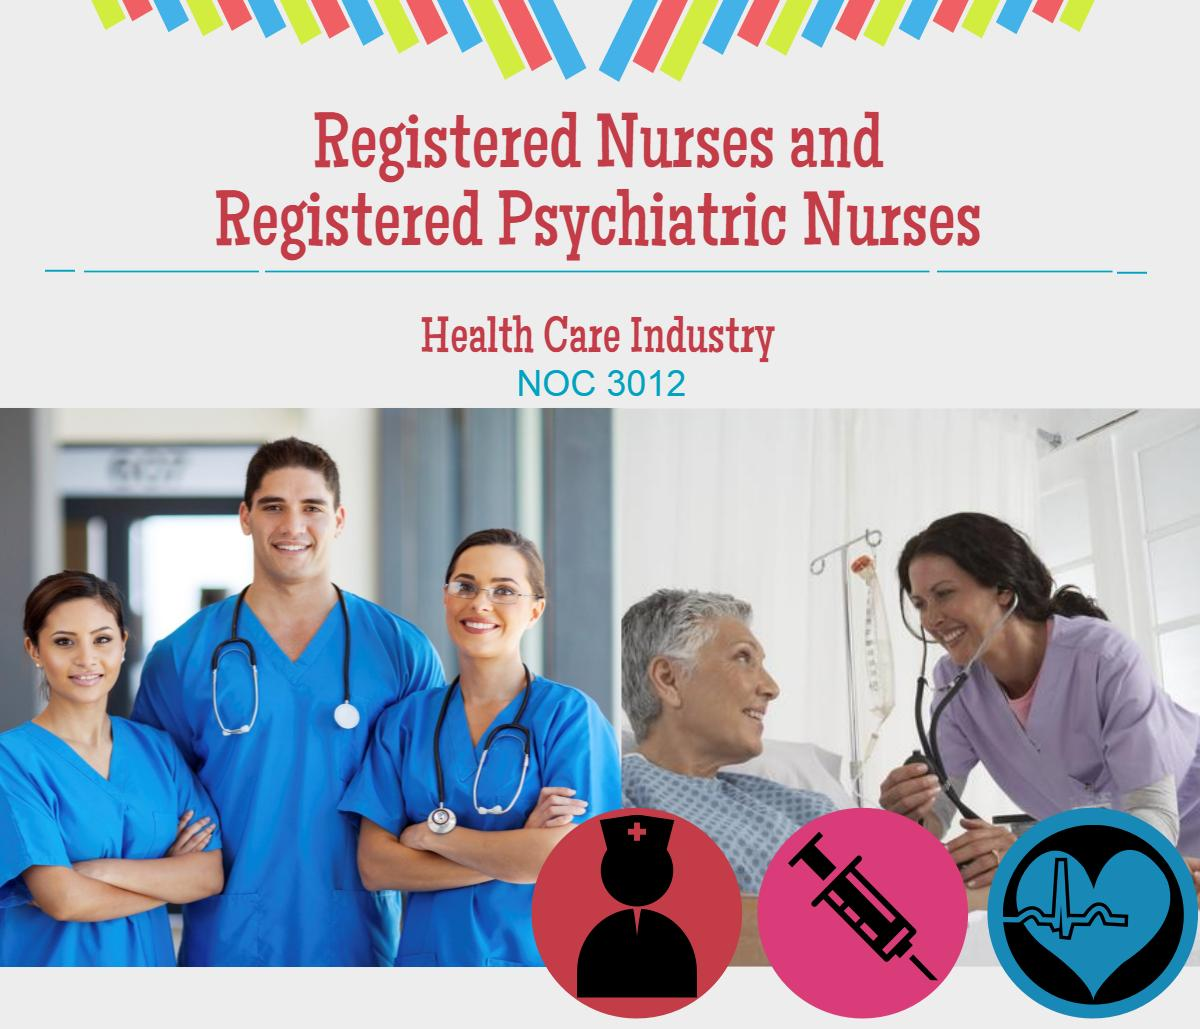 Registered Nurse and Registered Psychiatric Nurses